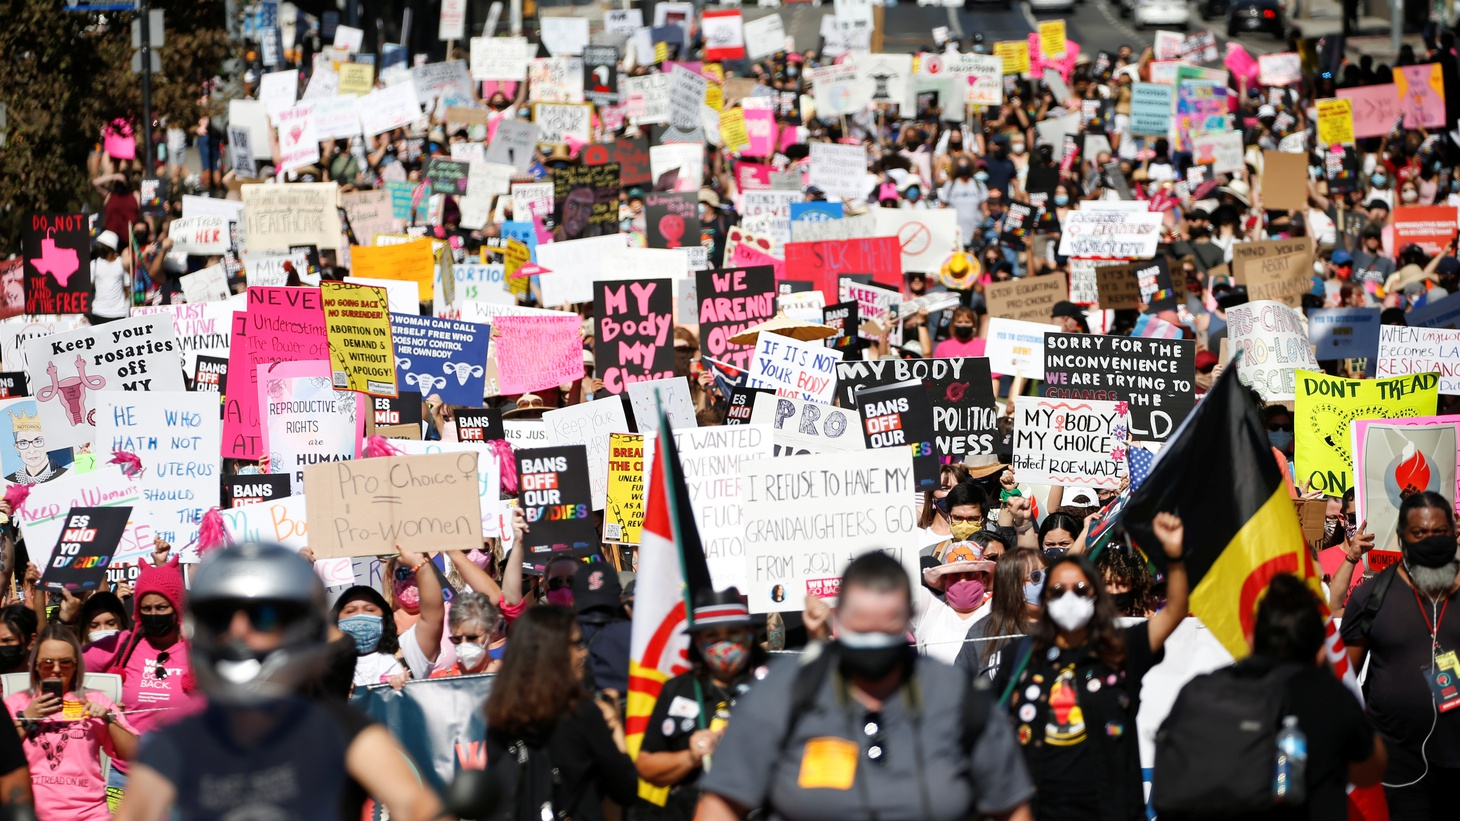 Supporters of reproductive choice take part in the nationwide Women's March, held after Texas rolled out a near-total ban on abortion procedures and access to abortion-inducing medications, in Los Angeles, California, U.S. October 2, 2021.